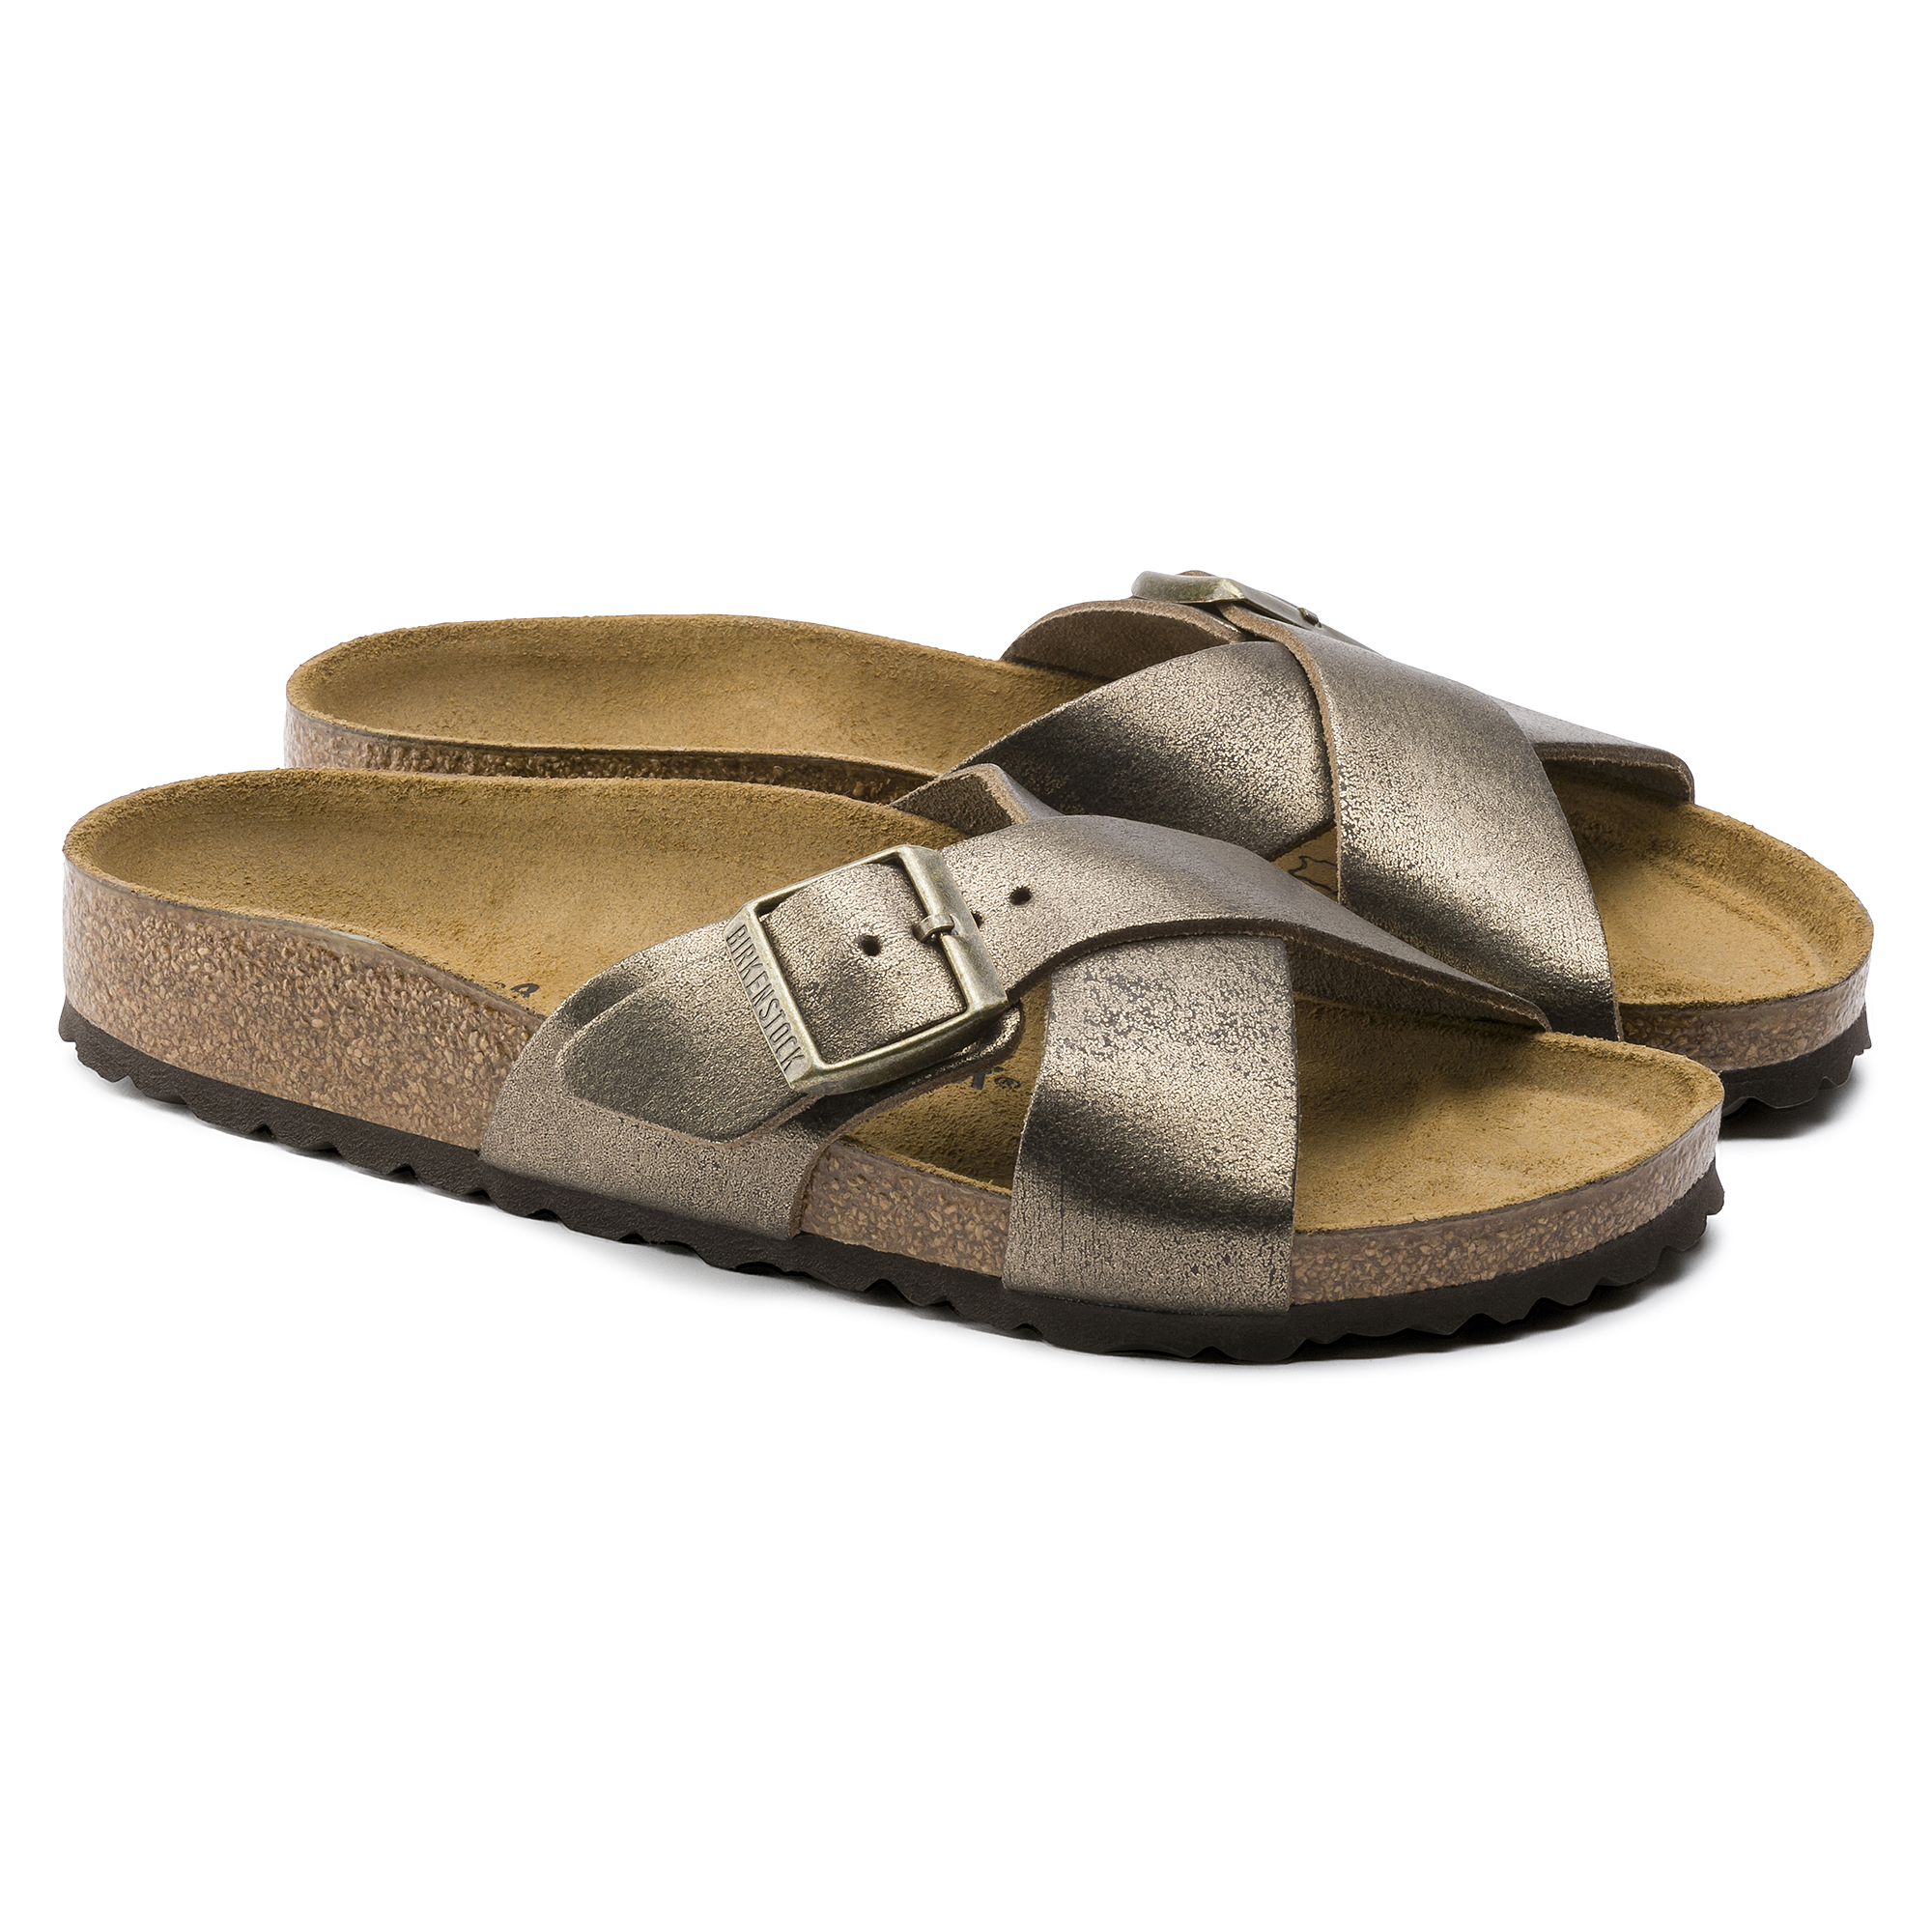 Siena Natural Leather | shop online at BIRKENSTOCK